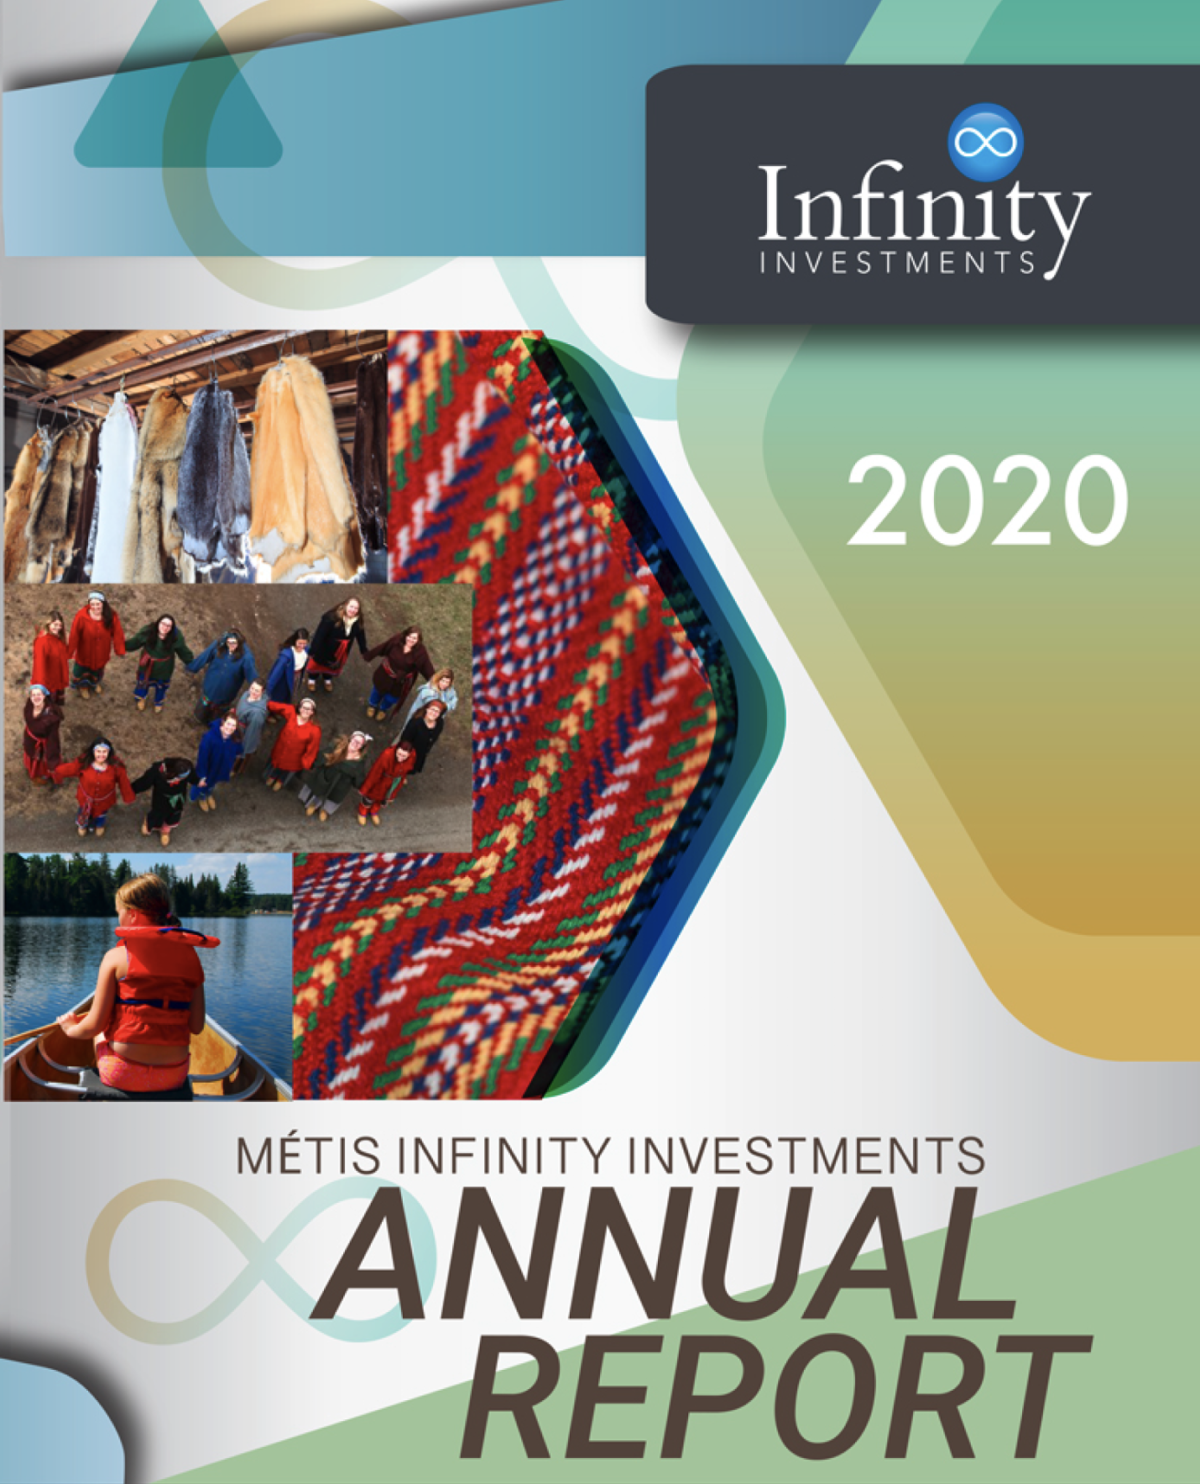 2020 Métis Infinity Investments Annual Report